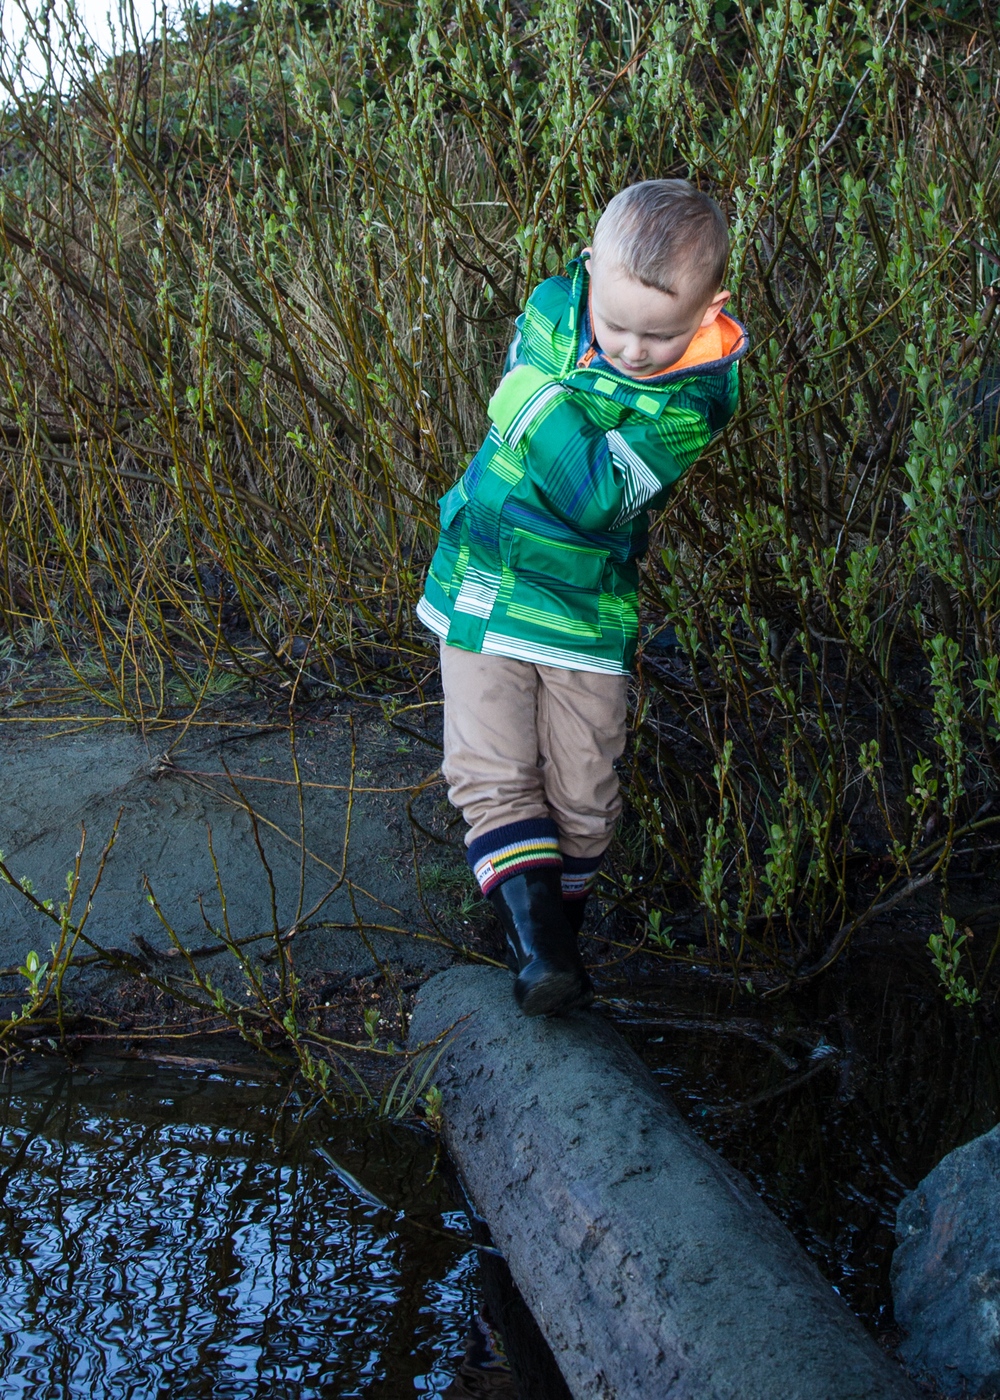 Ethan walking on a log - he ended up in the water right after this picture was taken...